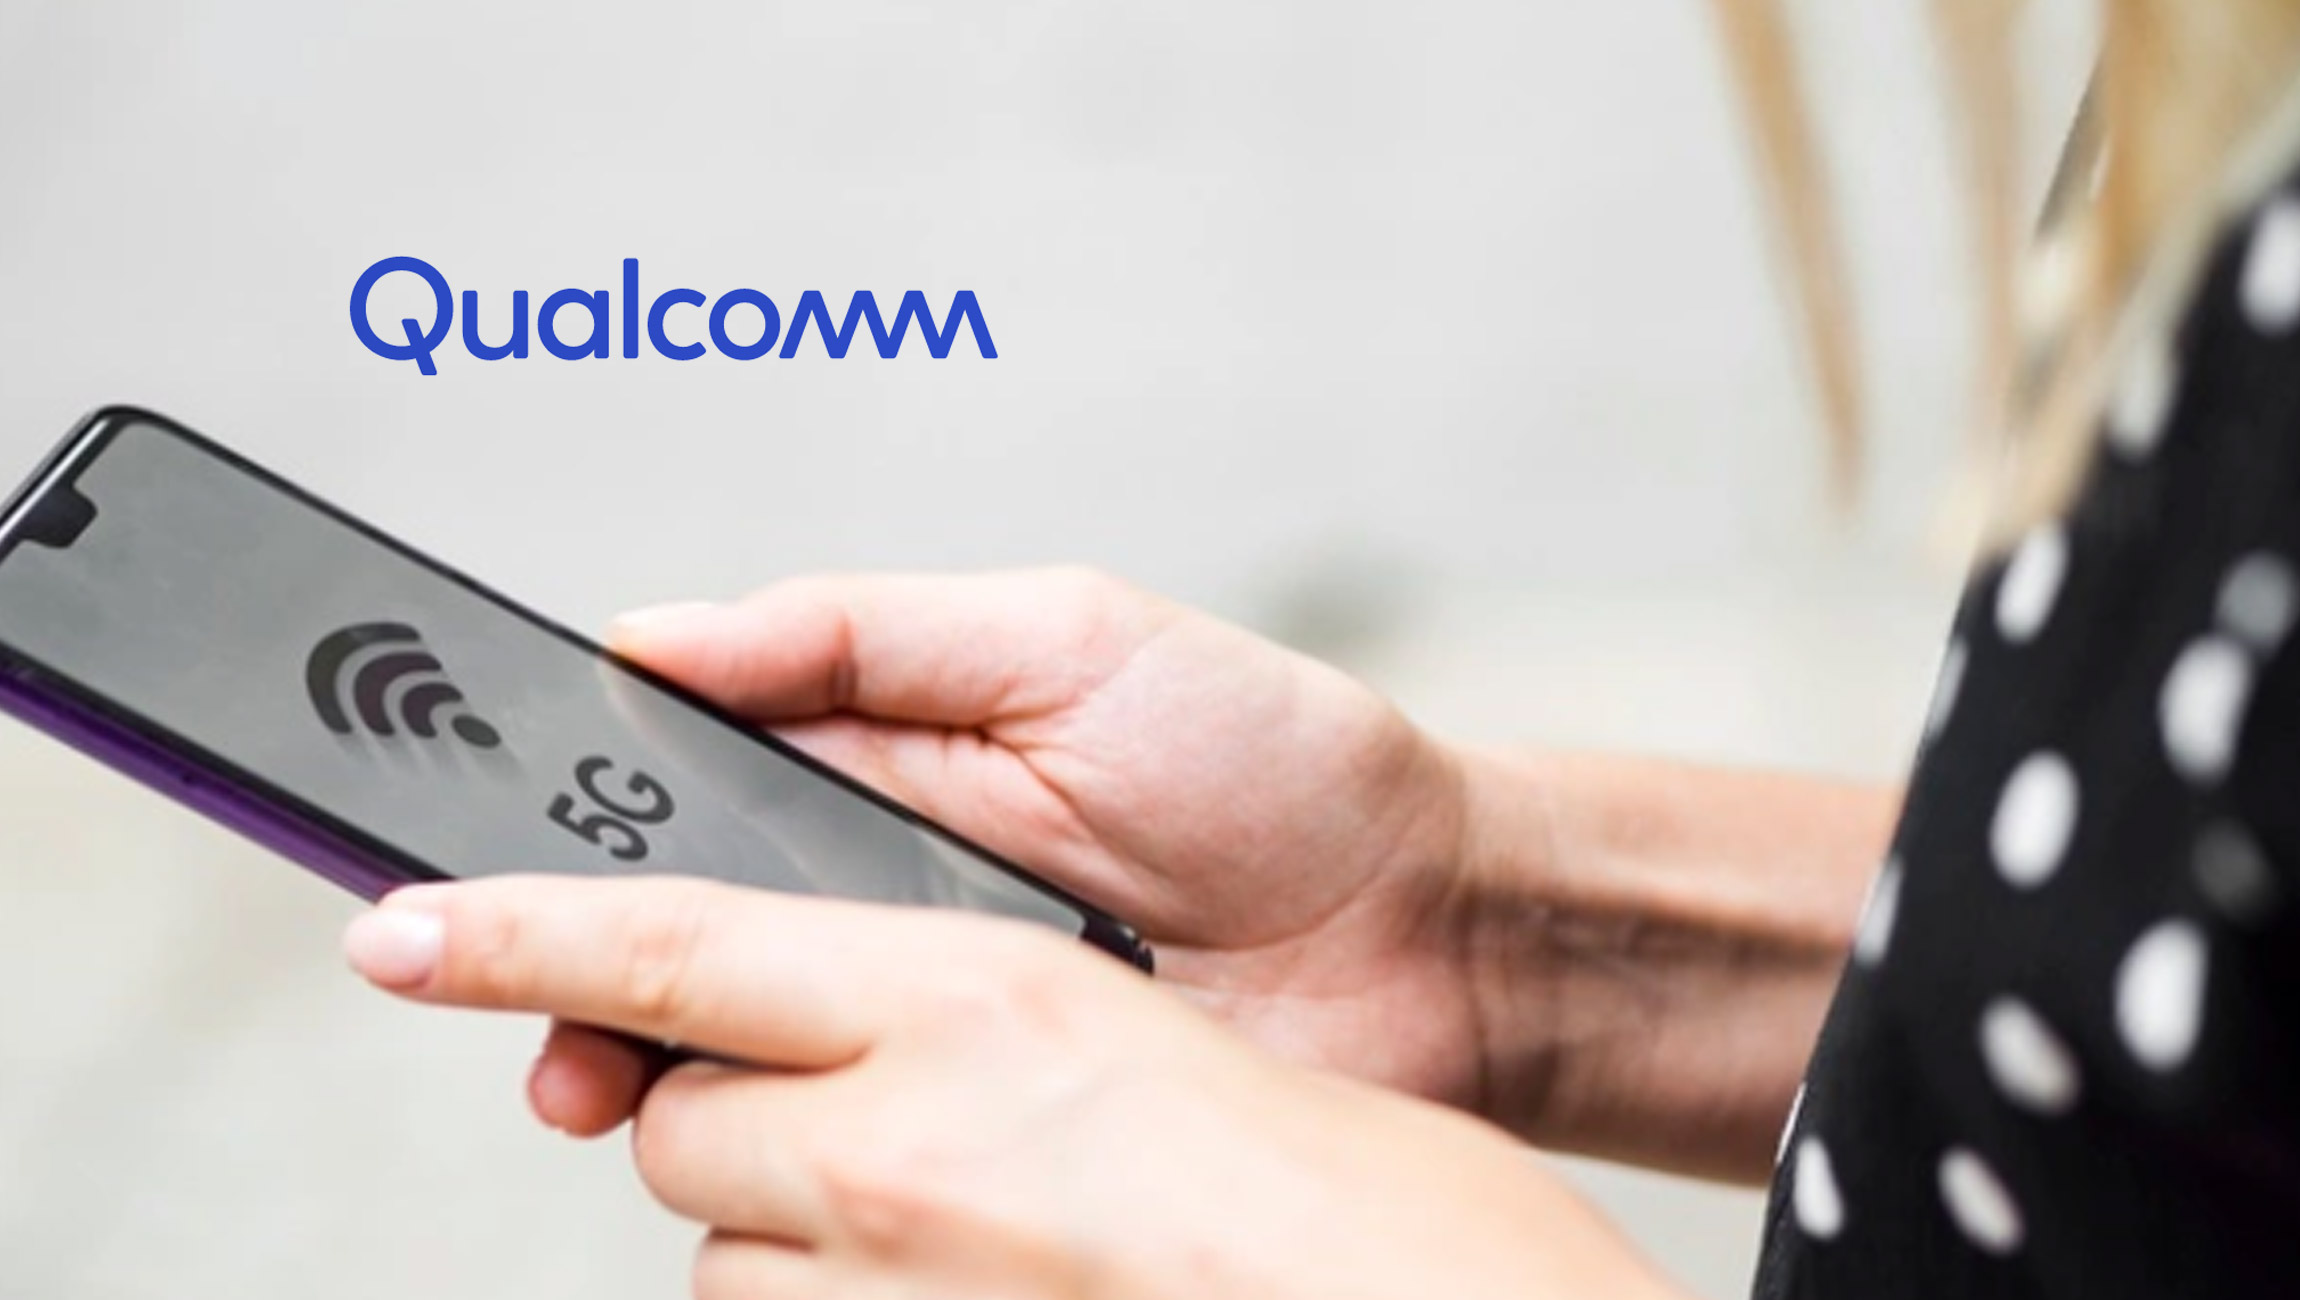 New-Qualcomm-Report-Calls-for-Accelerated-Efforts-to-Use-5G-to-Enable-a-More-Sustainable-Future (1)